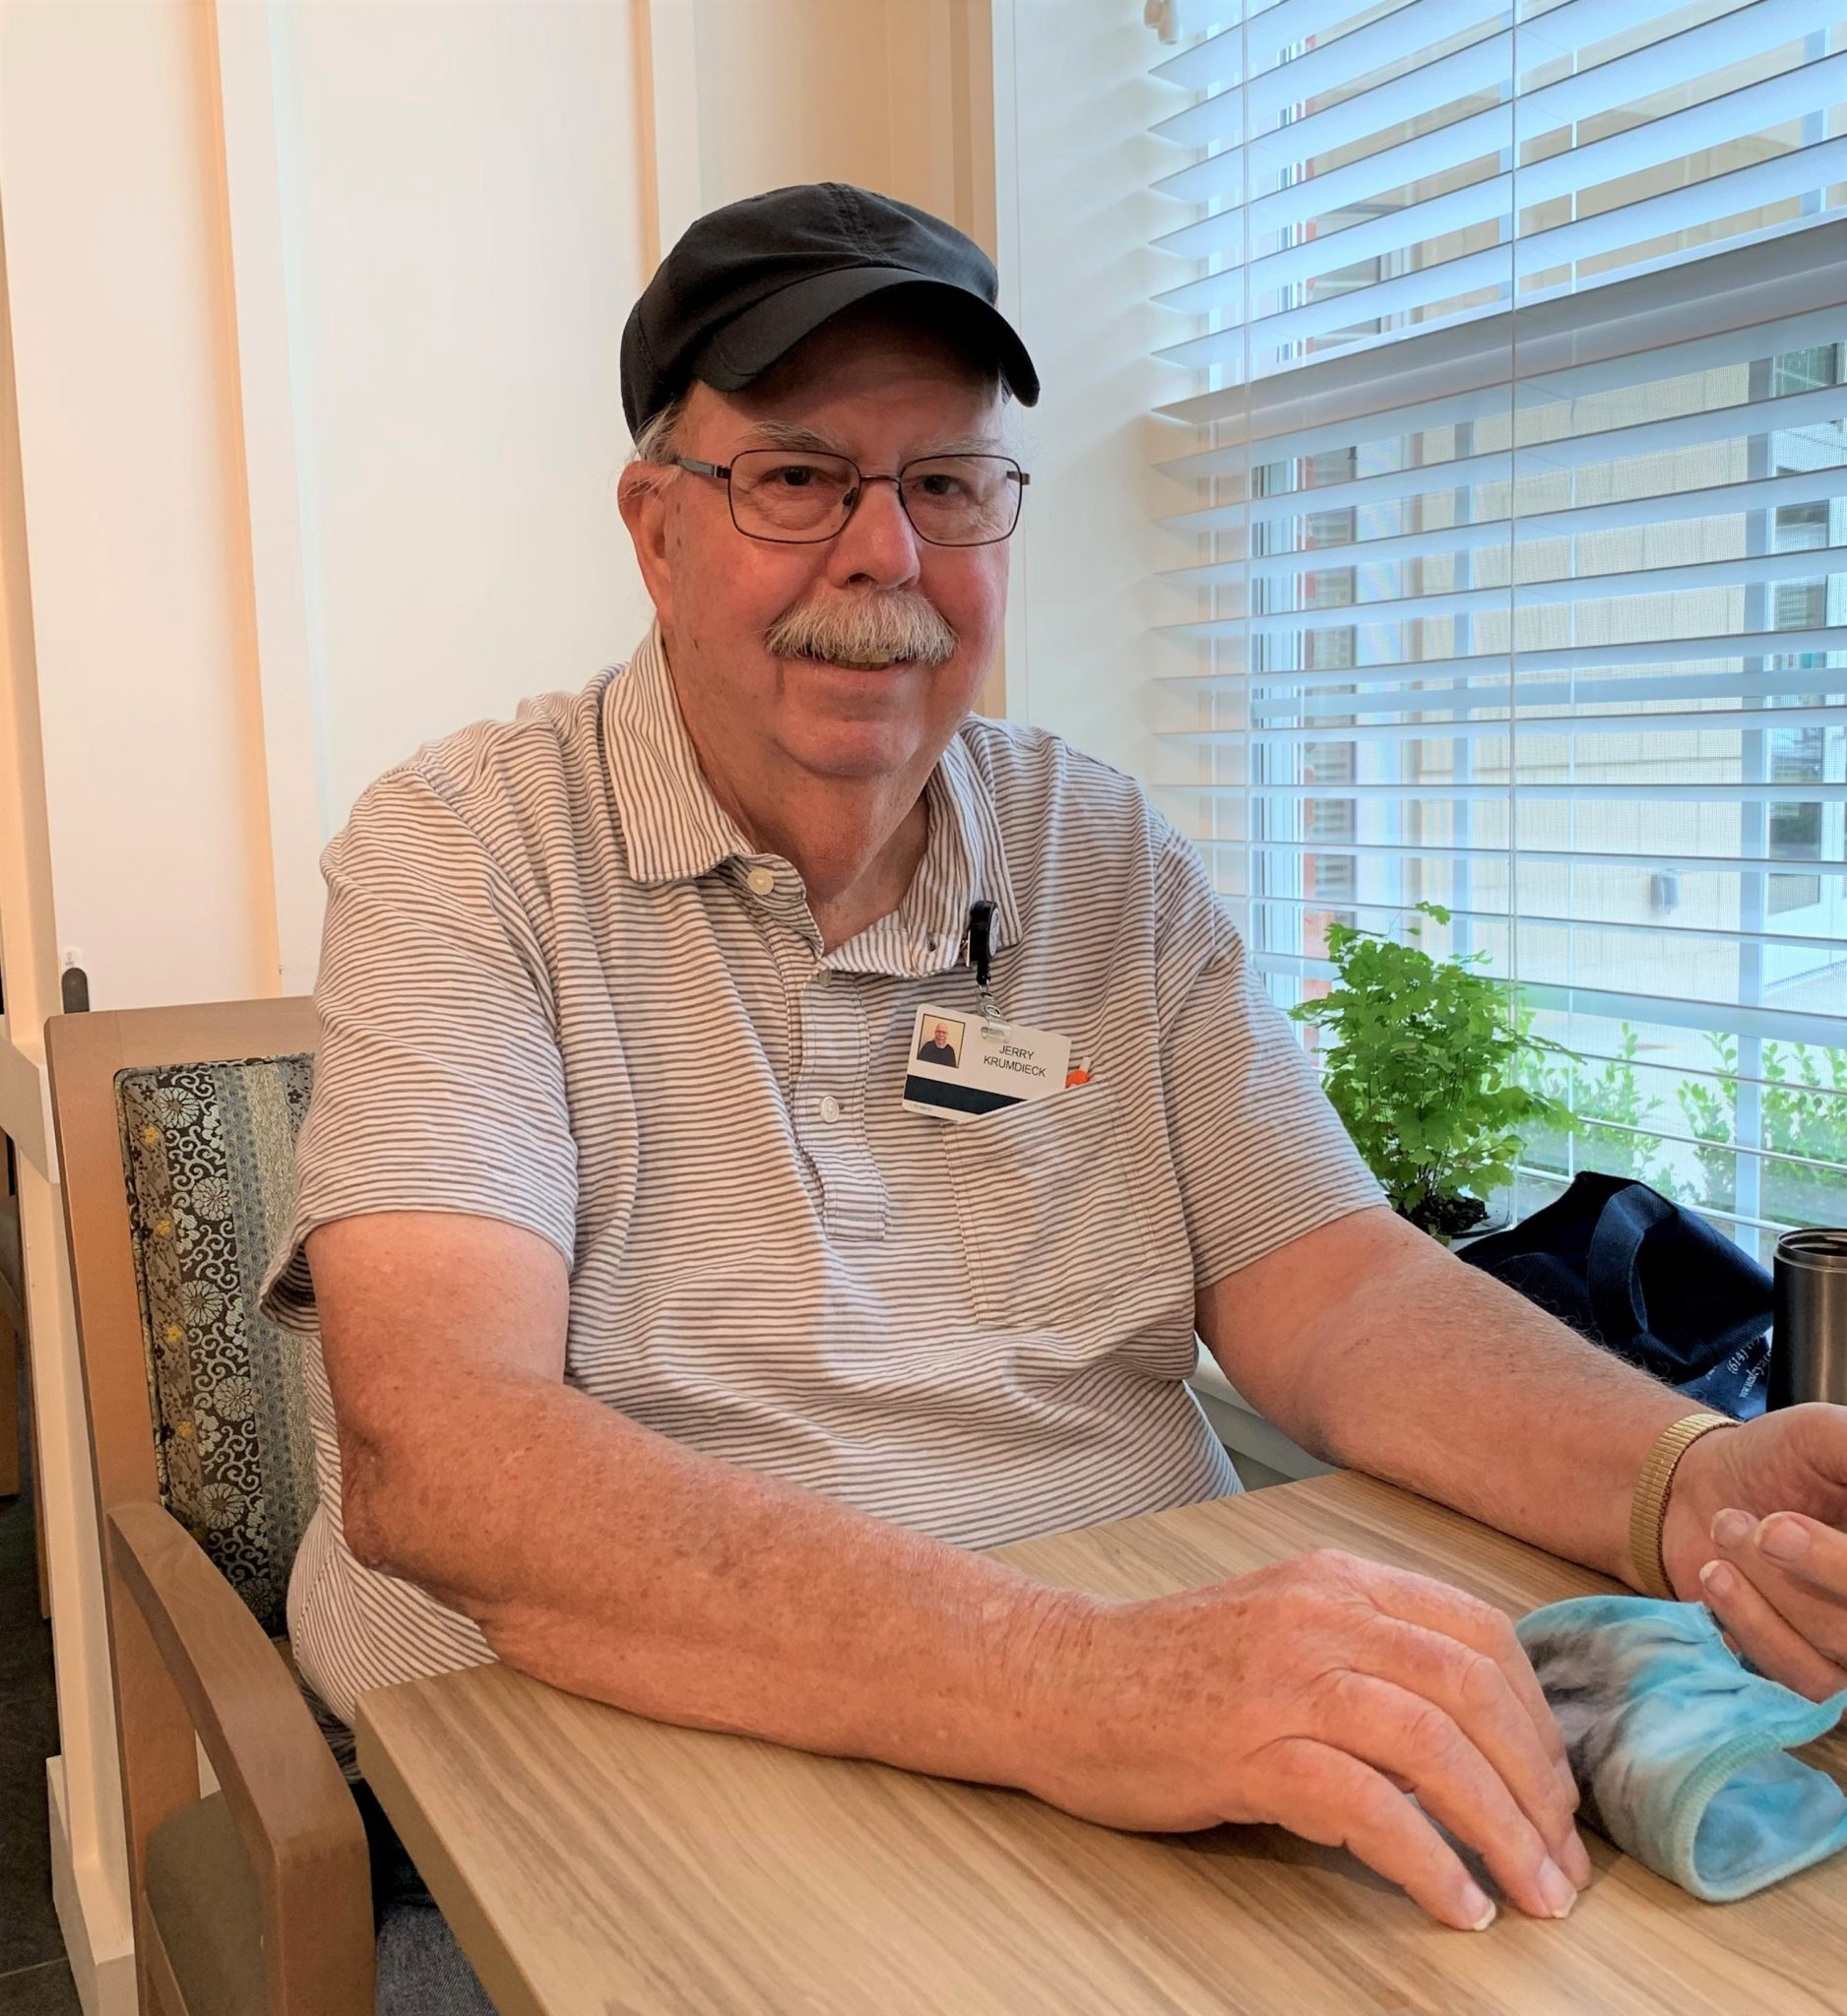 """This Is My Home"" – Jerry Shares His Thoughts on Life at Wesley Woods at New Albany"